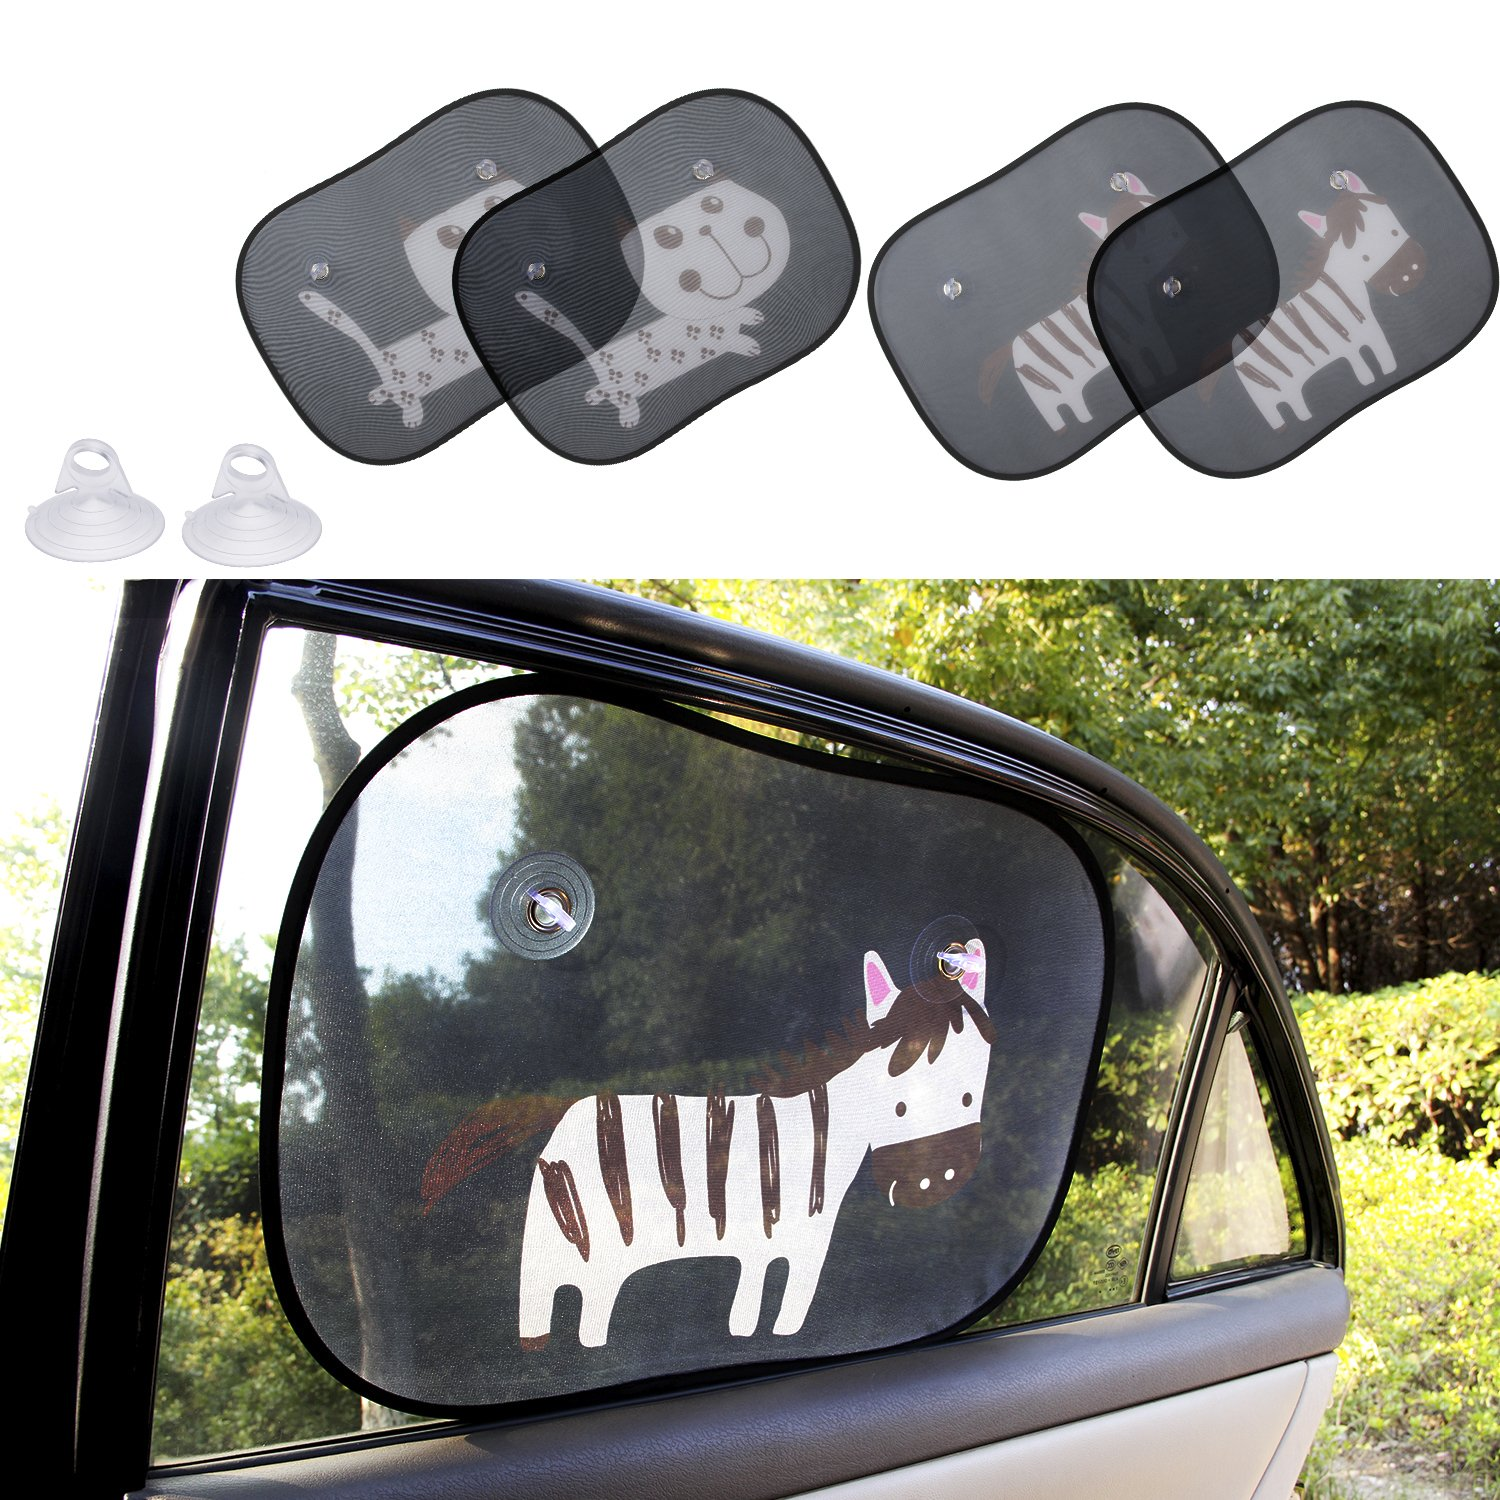 Biubee 4 Packs Car Window Sun Shade for Baby -19.7'' x 15'' with 2 Extra Suction Cups Safety Car Window Blinds and Sheild, Protect Baby & Infants from Sun, Glare and UV Rays by Biubee